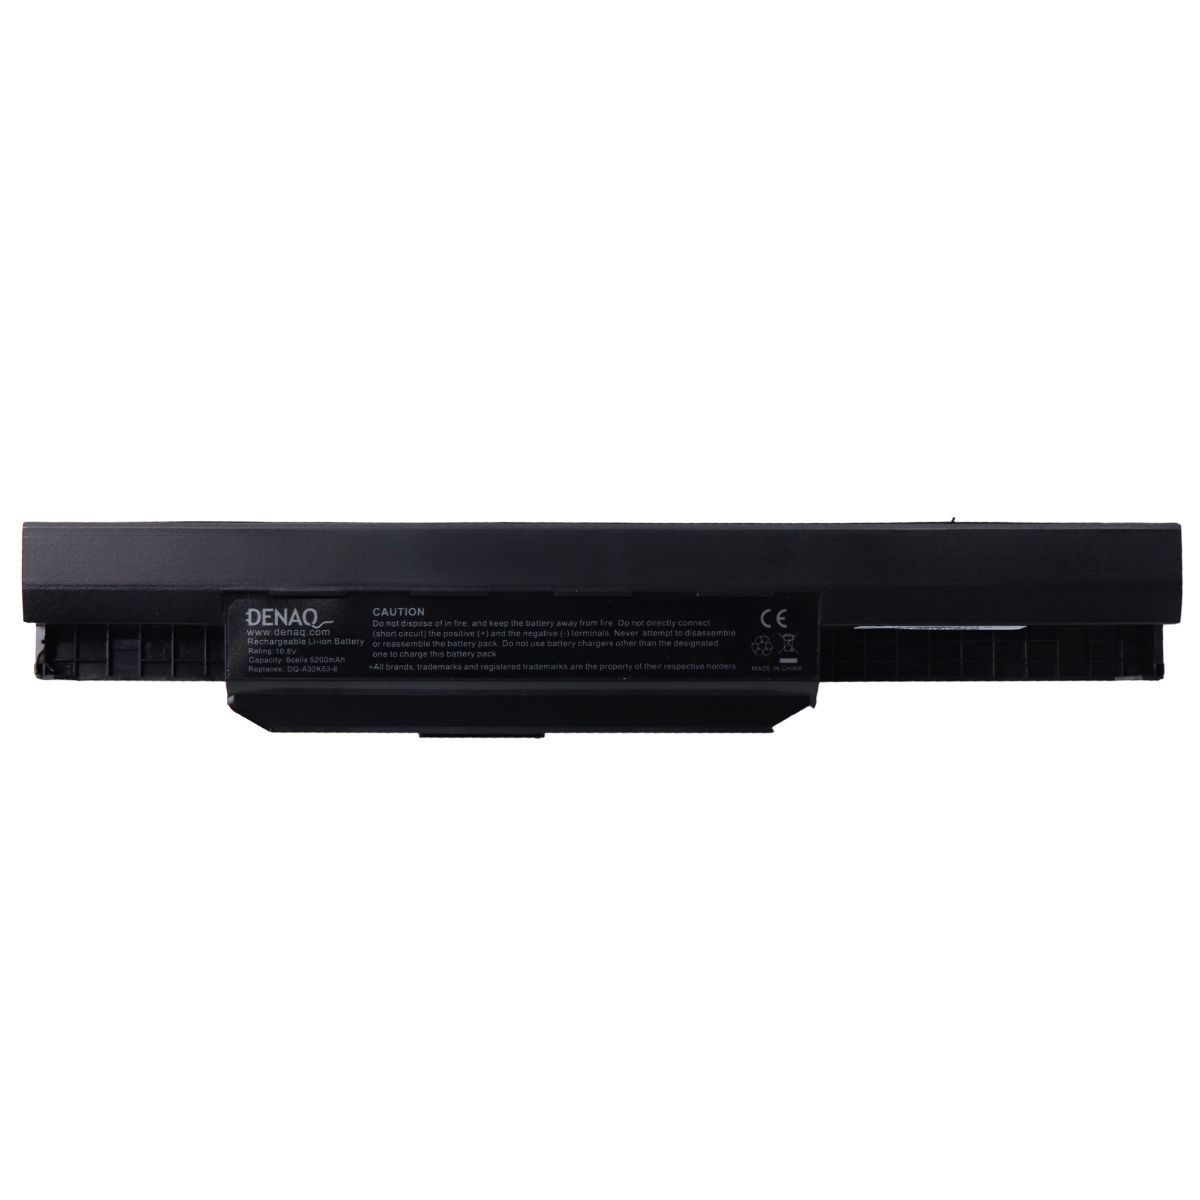 Denaq Replacement 6-Cell Li-Ion Battery for Select ASUS Laptops (NM-A32K53-6)